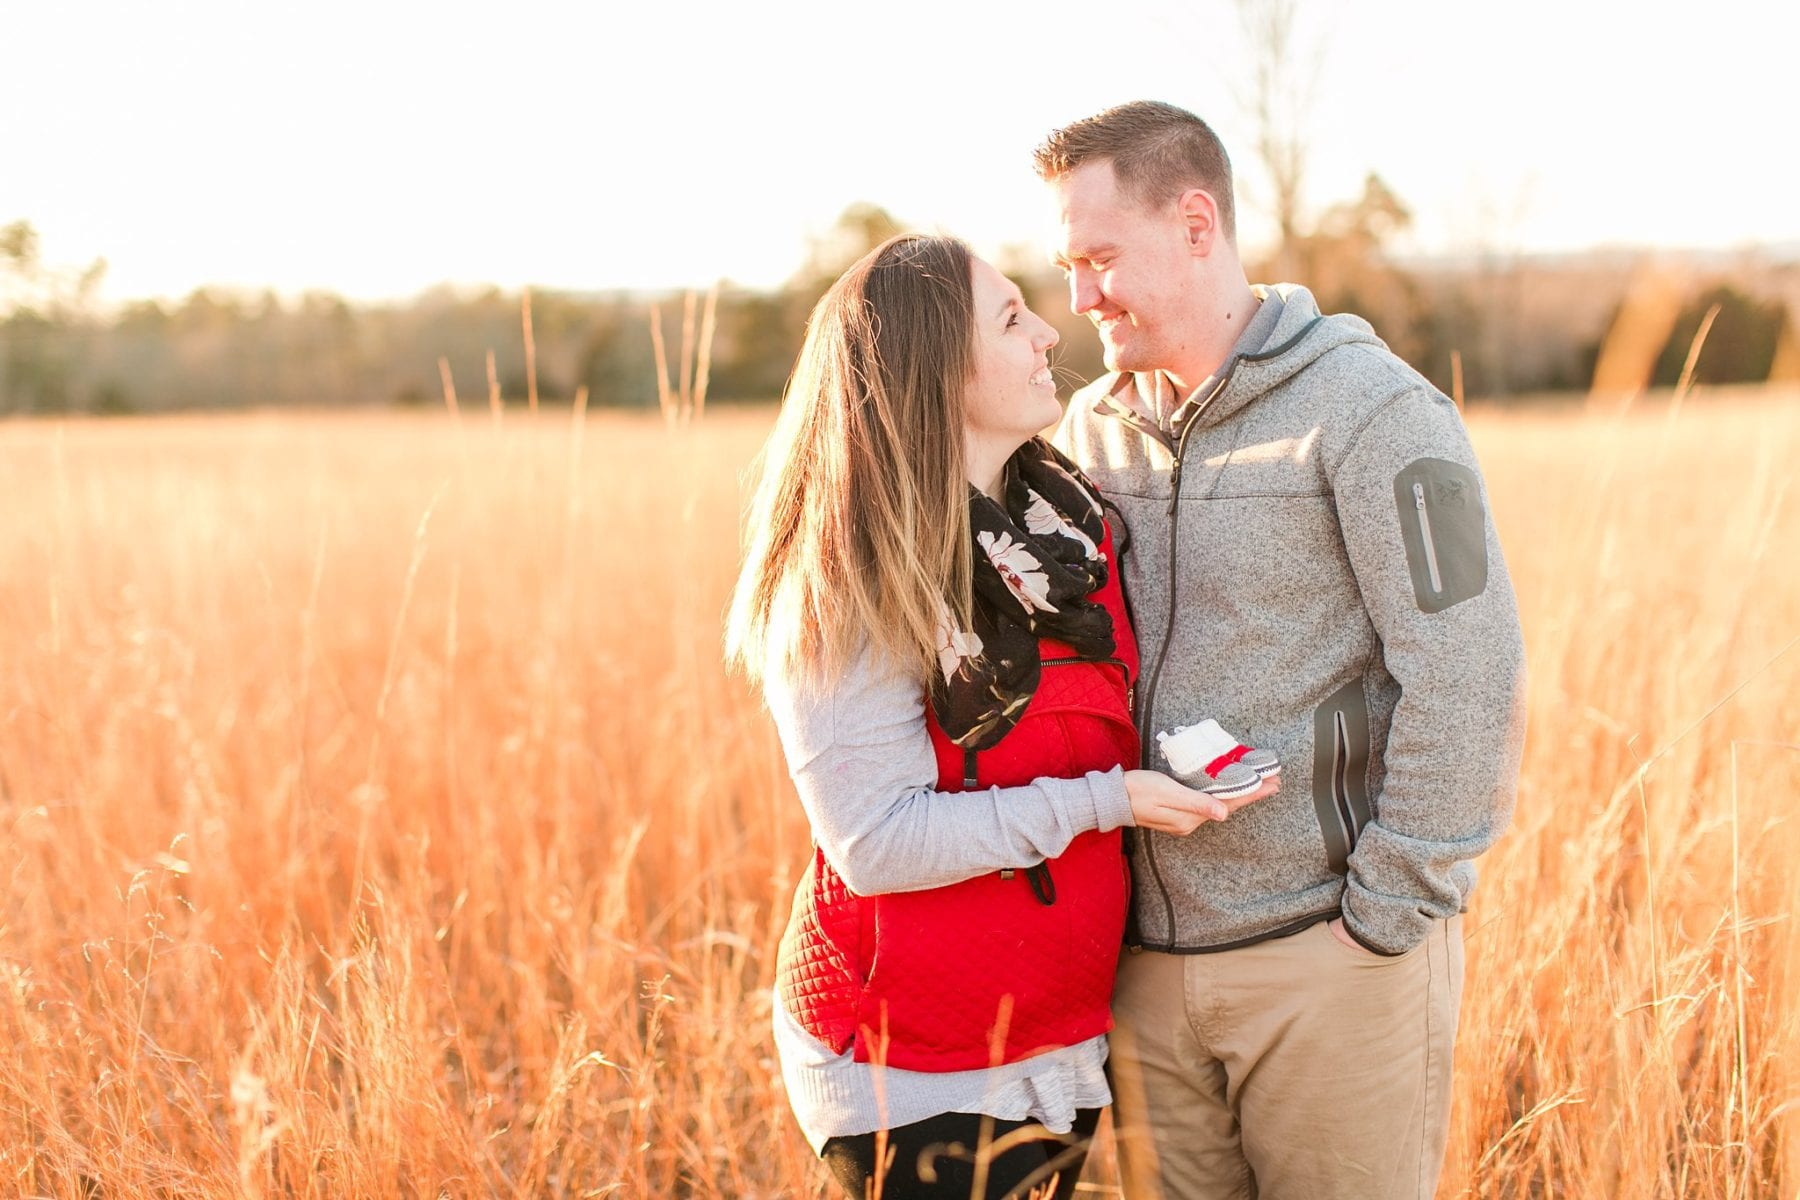 Firefighter Baby Announcement Virginia Photographer Megan Kelsey Photography Jeromy & Becky-143.jpg